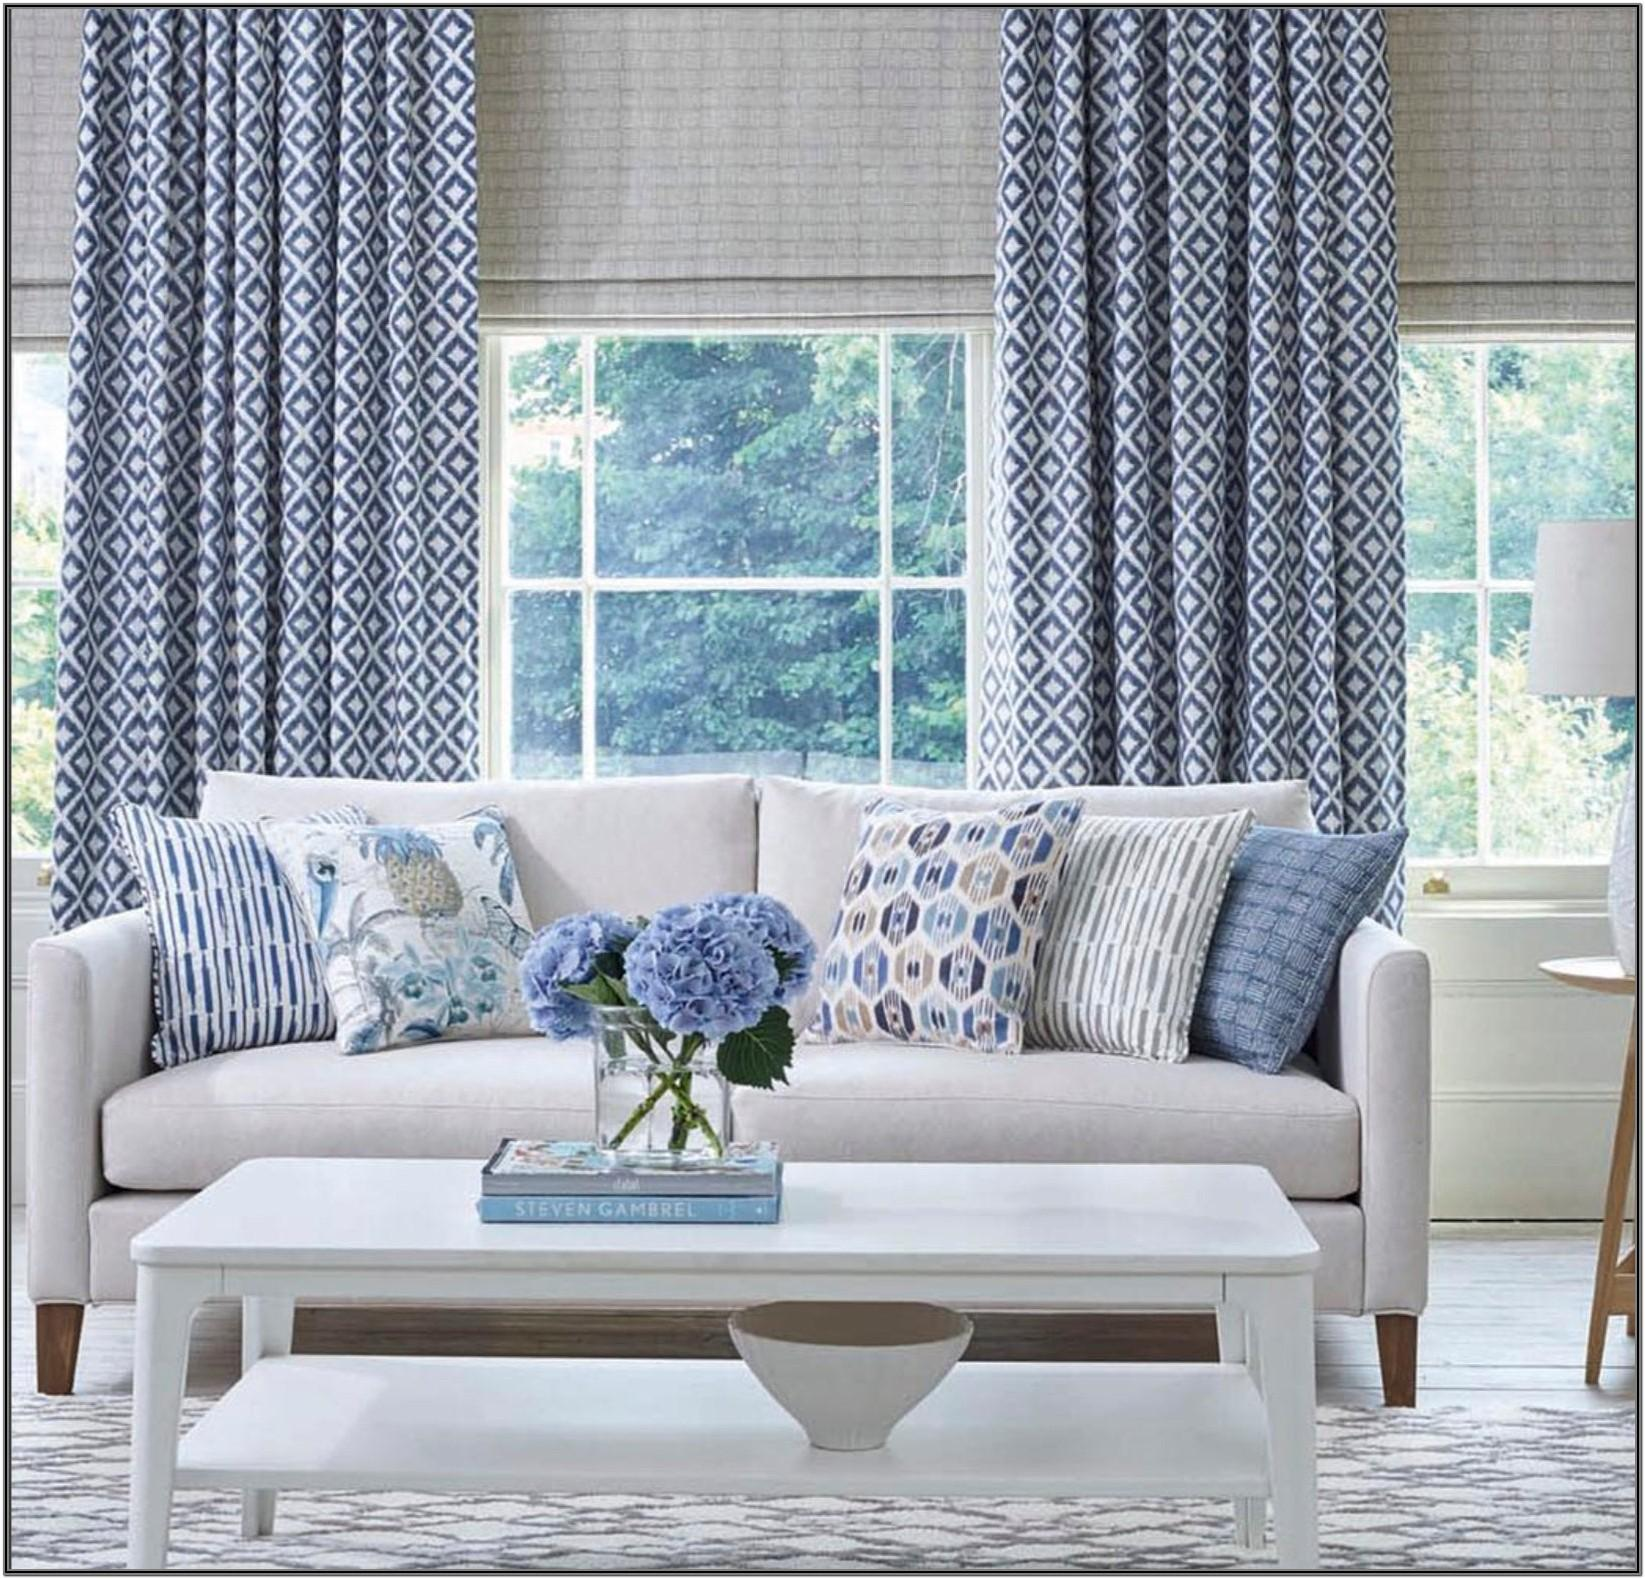 Blue Patterned Curtains Living Room